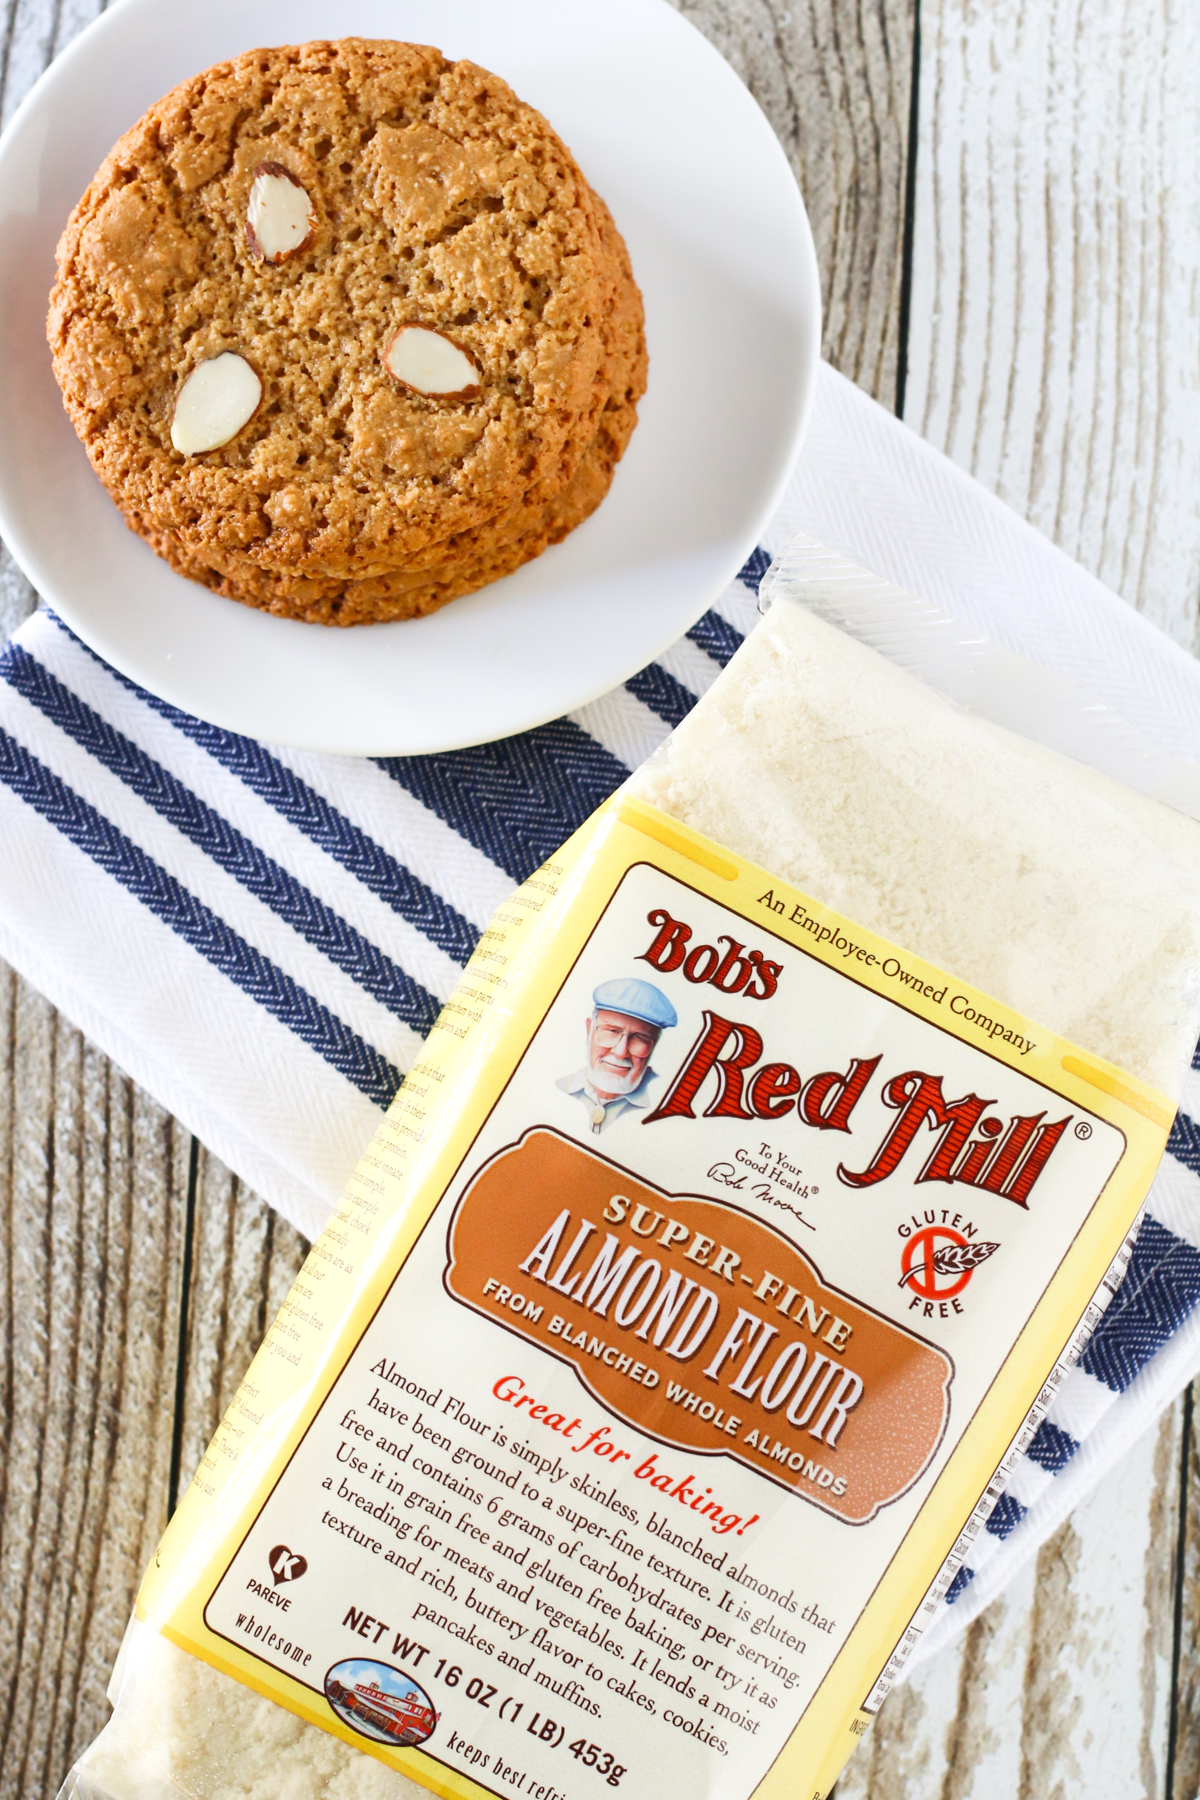 Gluten Free Vegan Almond Cookies. Made with Bob's Red Mill almond flour, these cookies have the perfect chewy, crispy texture.